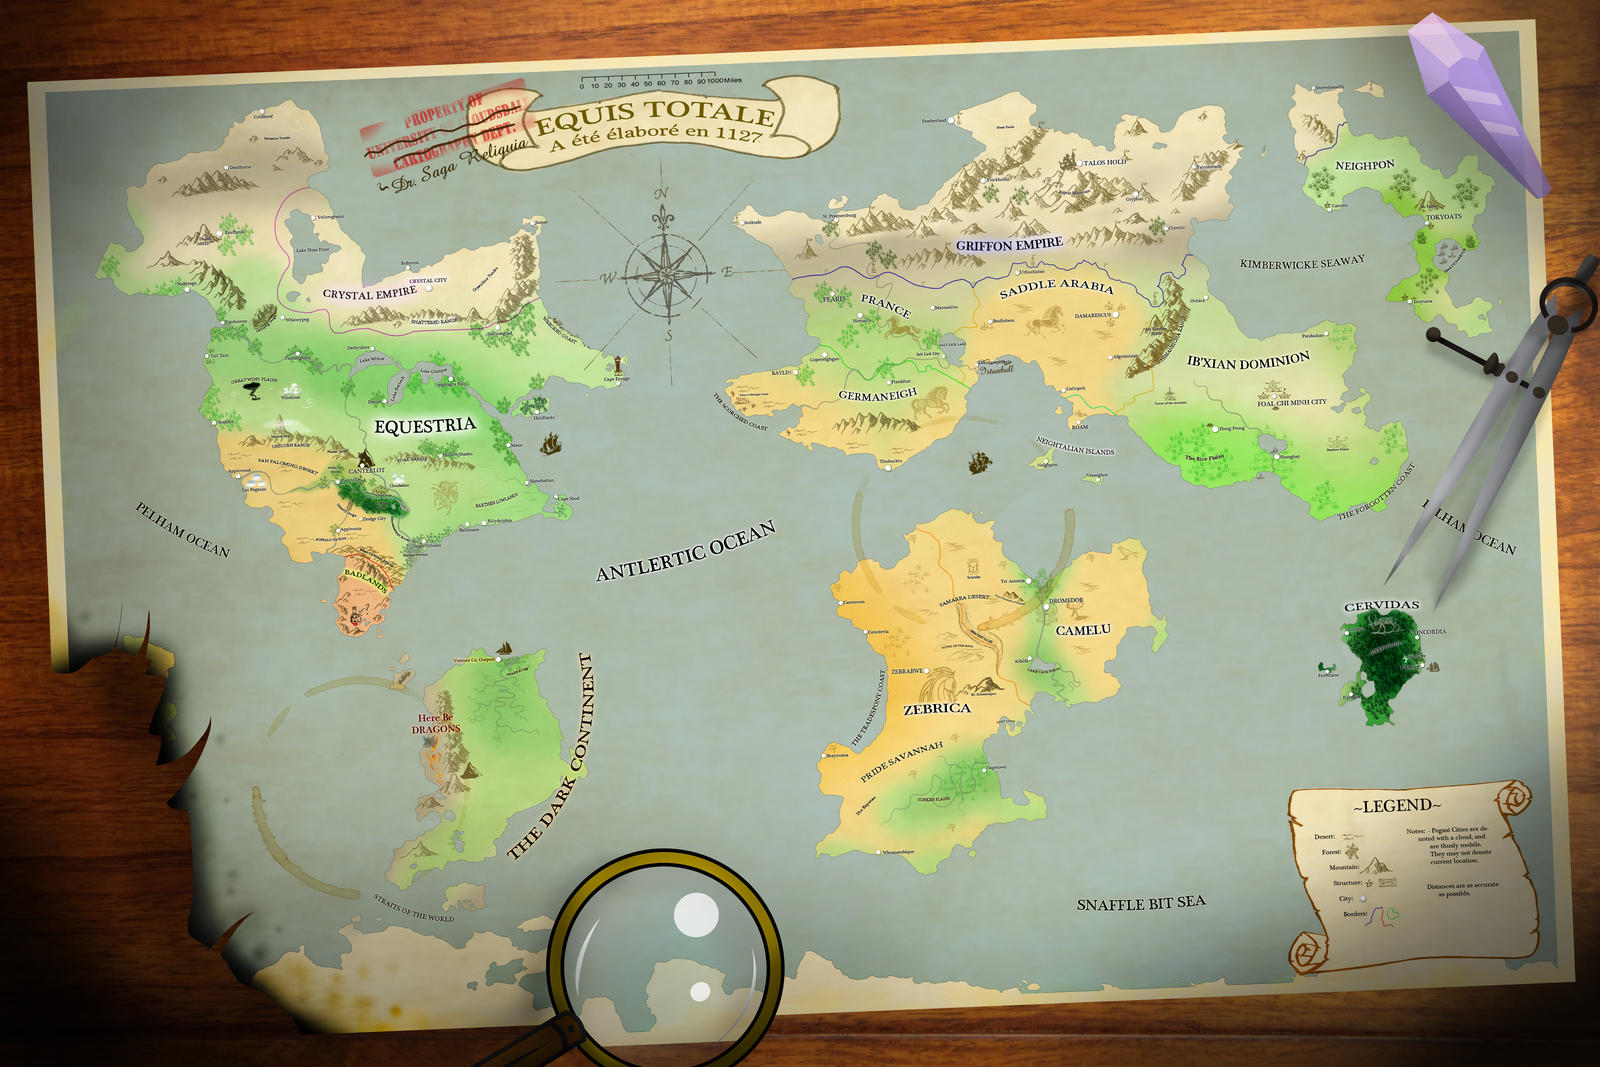 Equis totale alternate pony map of the world by icaron on deviantart equis totale alternate pony map of the world by icaron gumiabroncs Image collections